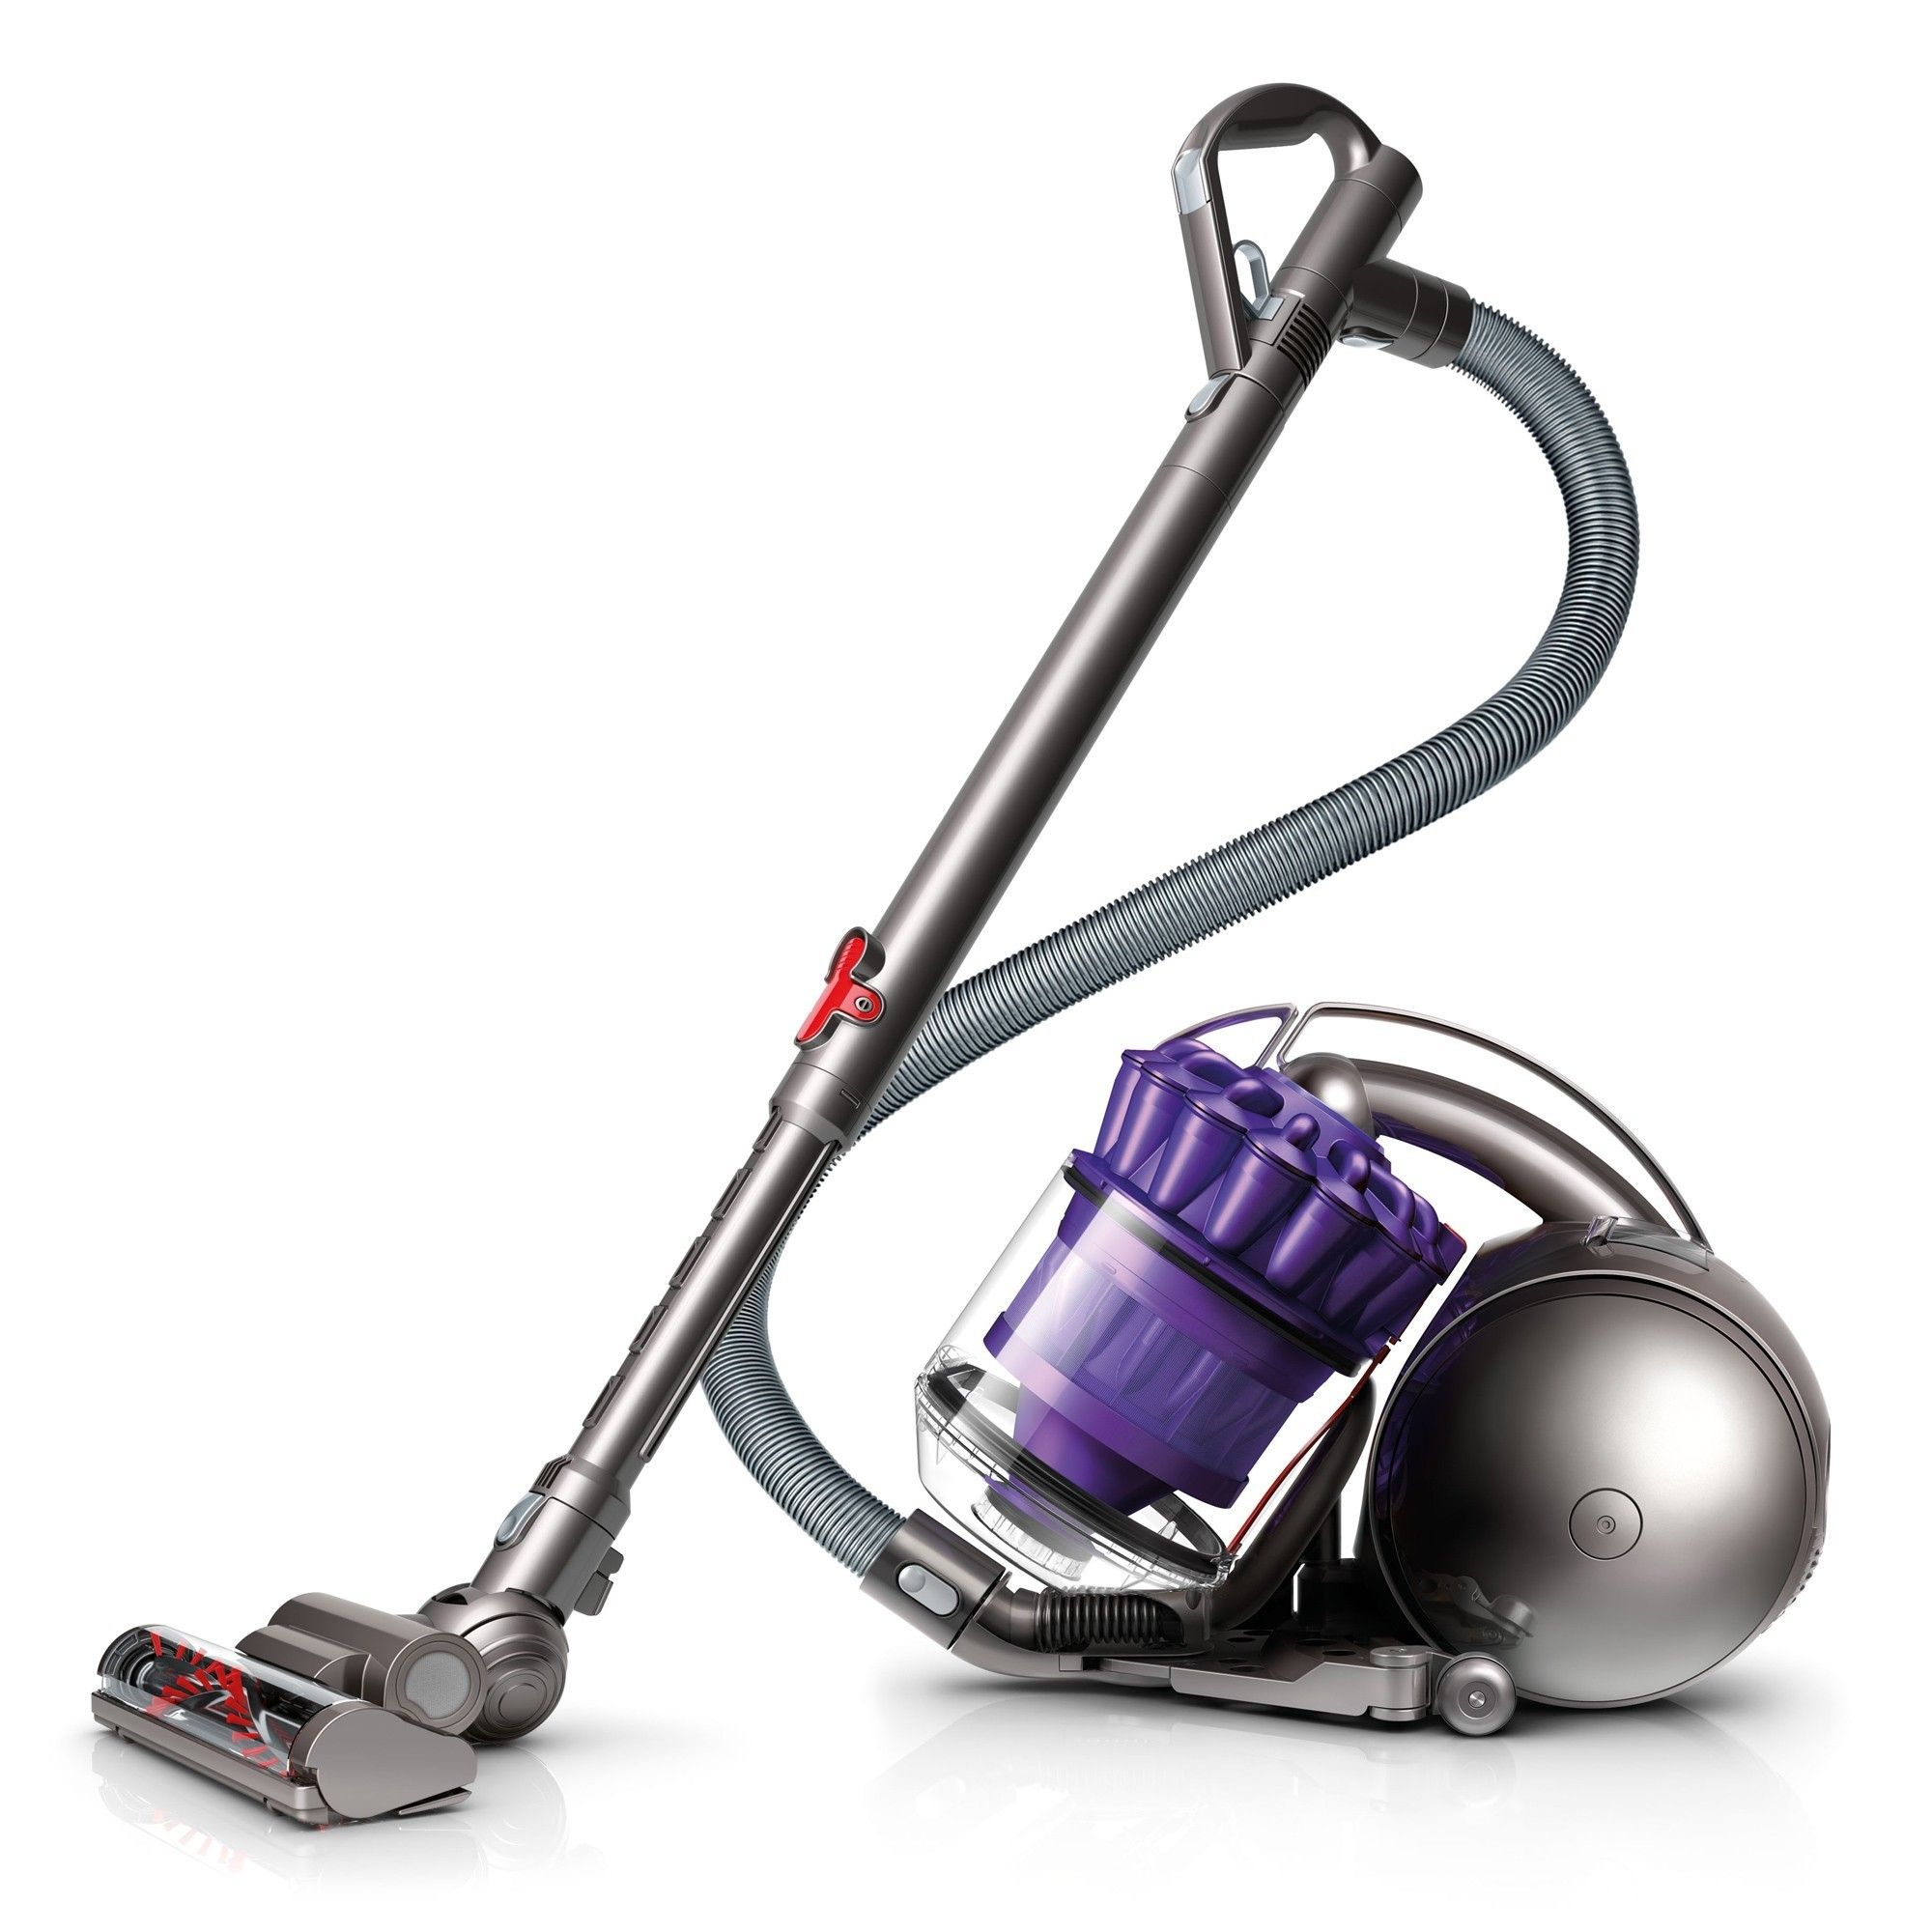 Our Best Vacuums Floor Care Deals Canister Vacuum Canister Vacuum Cleaner Vacuum Cleaner